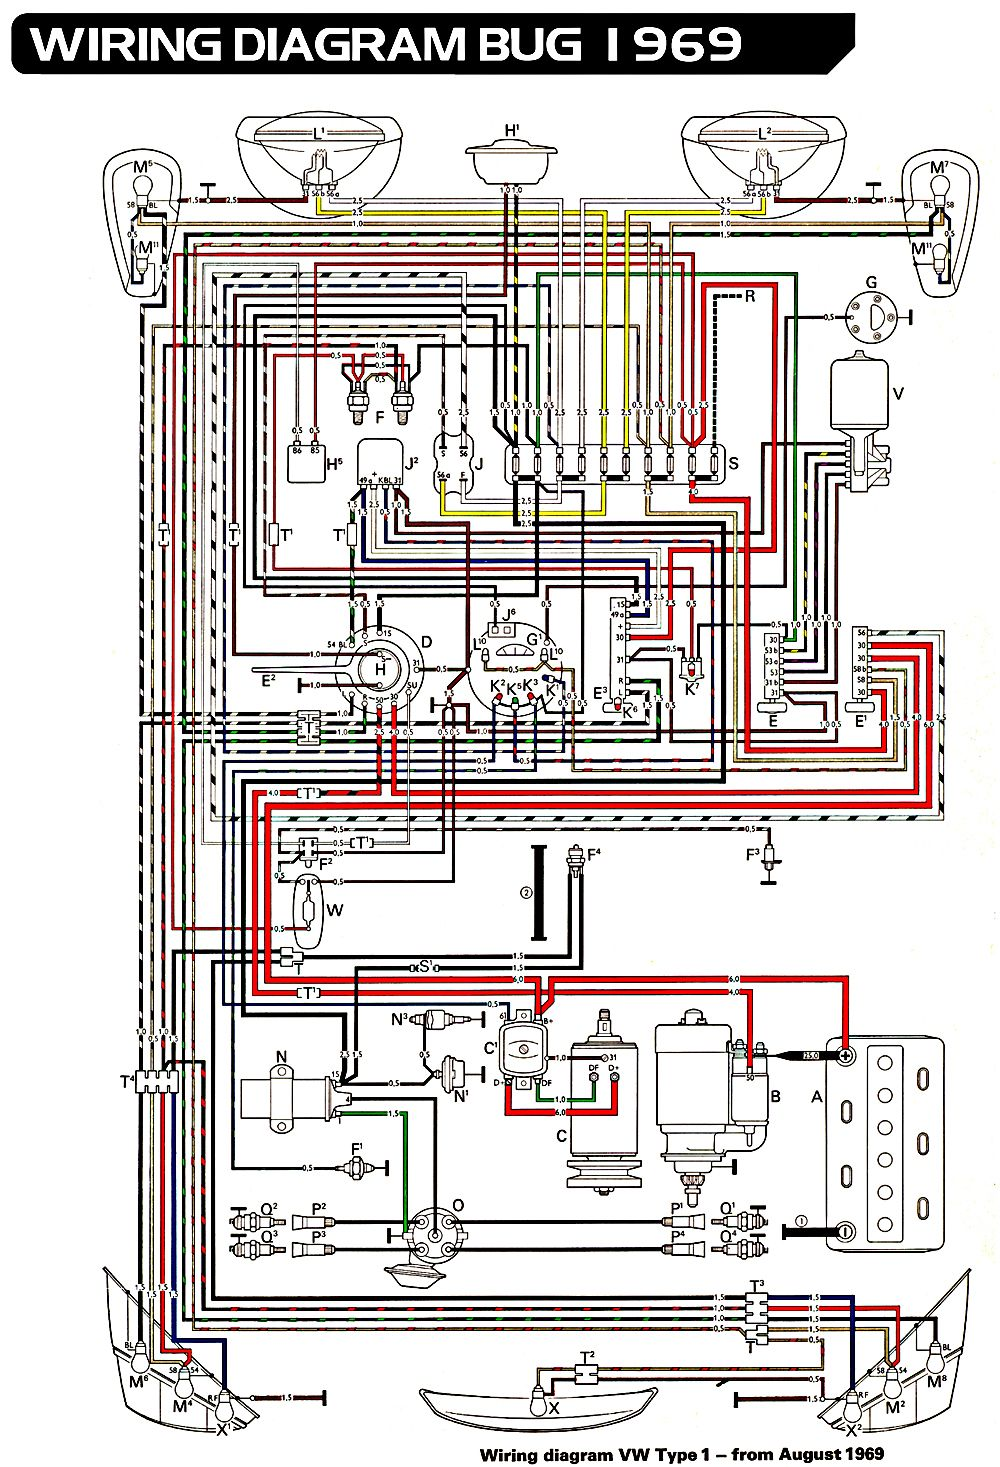 2001 Vw Beetle Wiring Harness - Diagram Data Schema  Vw Beetle Engine Wiring Diagram on alfa romeo spider wiring diagram, volkswagen fuel diagram, 1963 vw wiring diagram, vw buggy wiring-diagram, vw beetle engine diagram, vw rabbit wiring-diagram, vw turn signal wiring diagram, 1967 vw wiring diagram, vw type 2 wiring diagram, vw starter wiring diagram, 1974 vw engine diagram, fiat uno wiring diagram, porsche cayenne wiring diagram, vw distributor diagram, 68 vw wiring diagram, vw beetle fuel injection diagram, 1999 vw passat wiring diagram, 1973 vw wiring diagram, type 3 wiring diagram, vw light switch wiring,